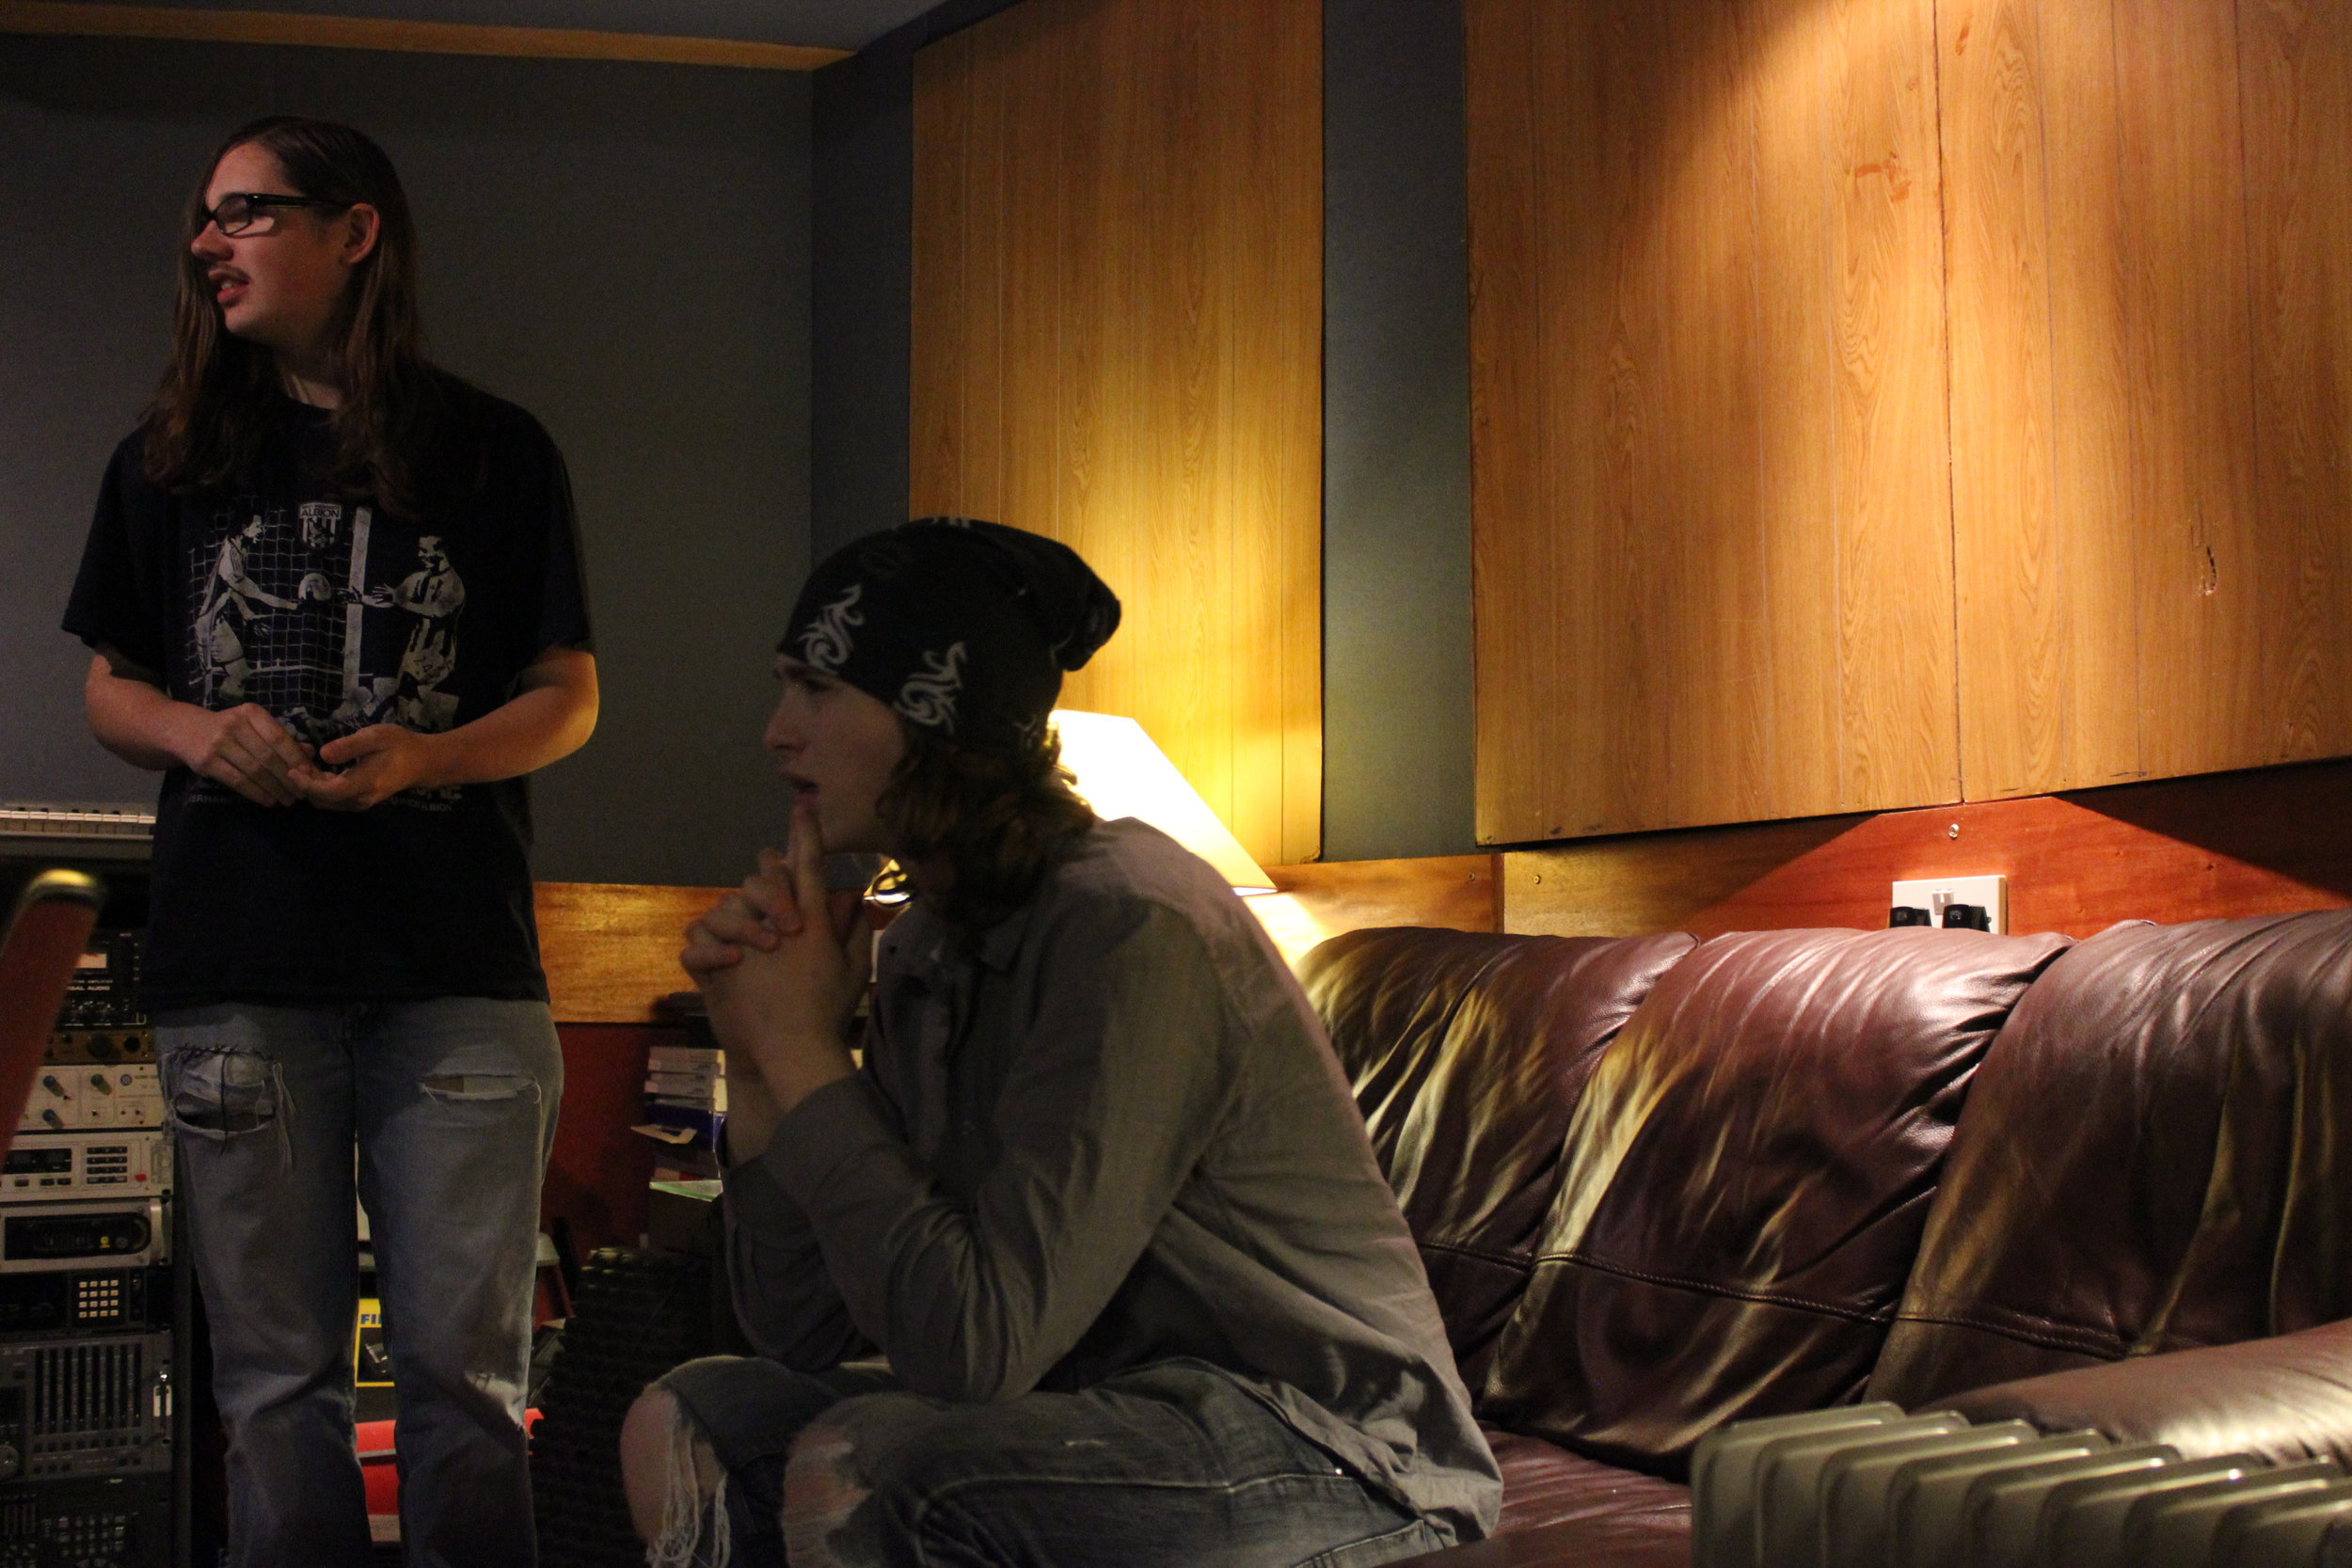 - We thought intensely about the music we had recorded.